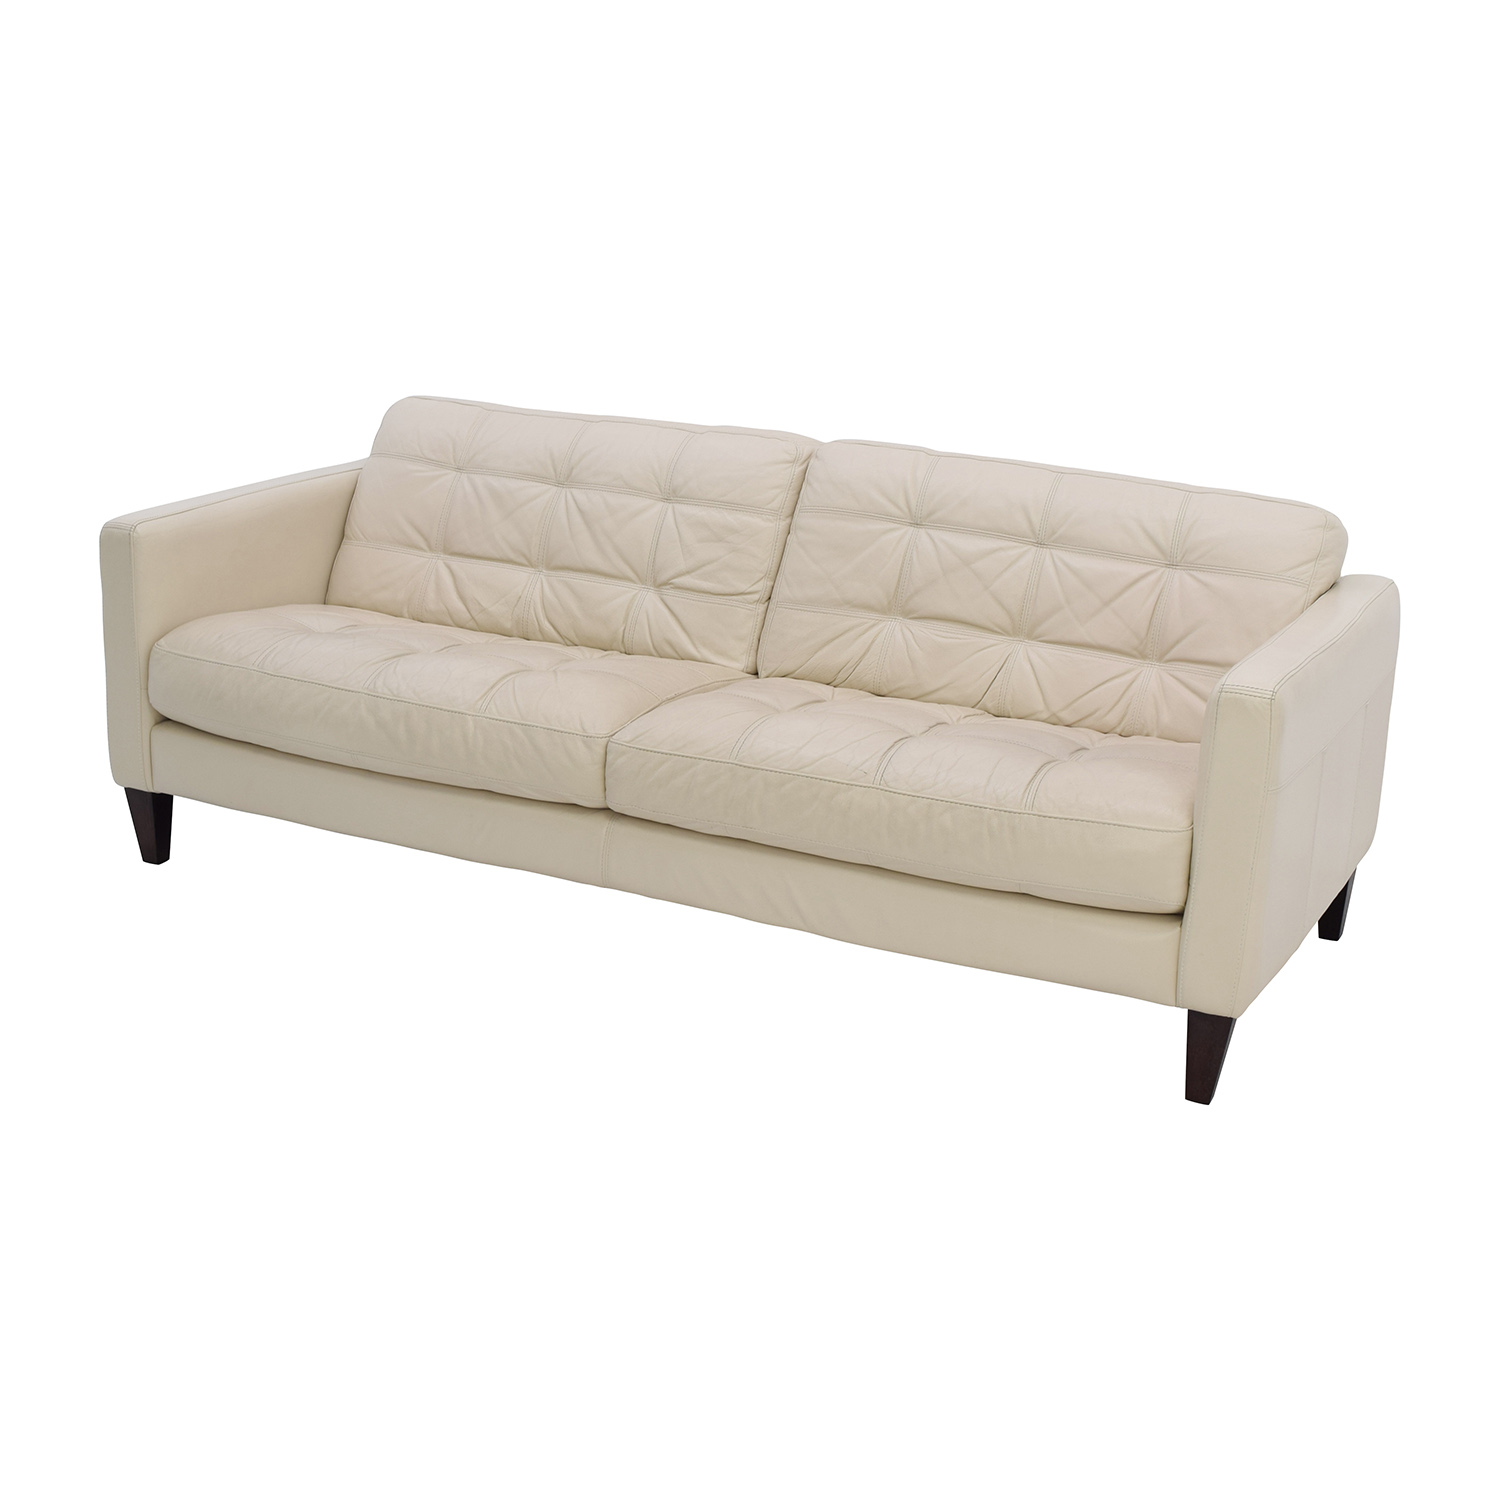 Macy's Macy's Milan Pearl Leather Sofa / Sofas